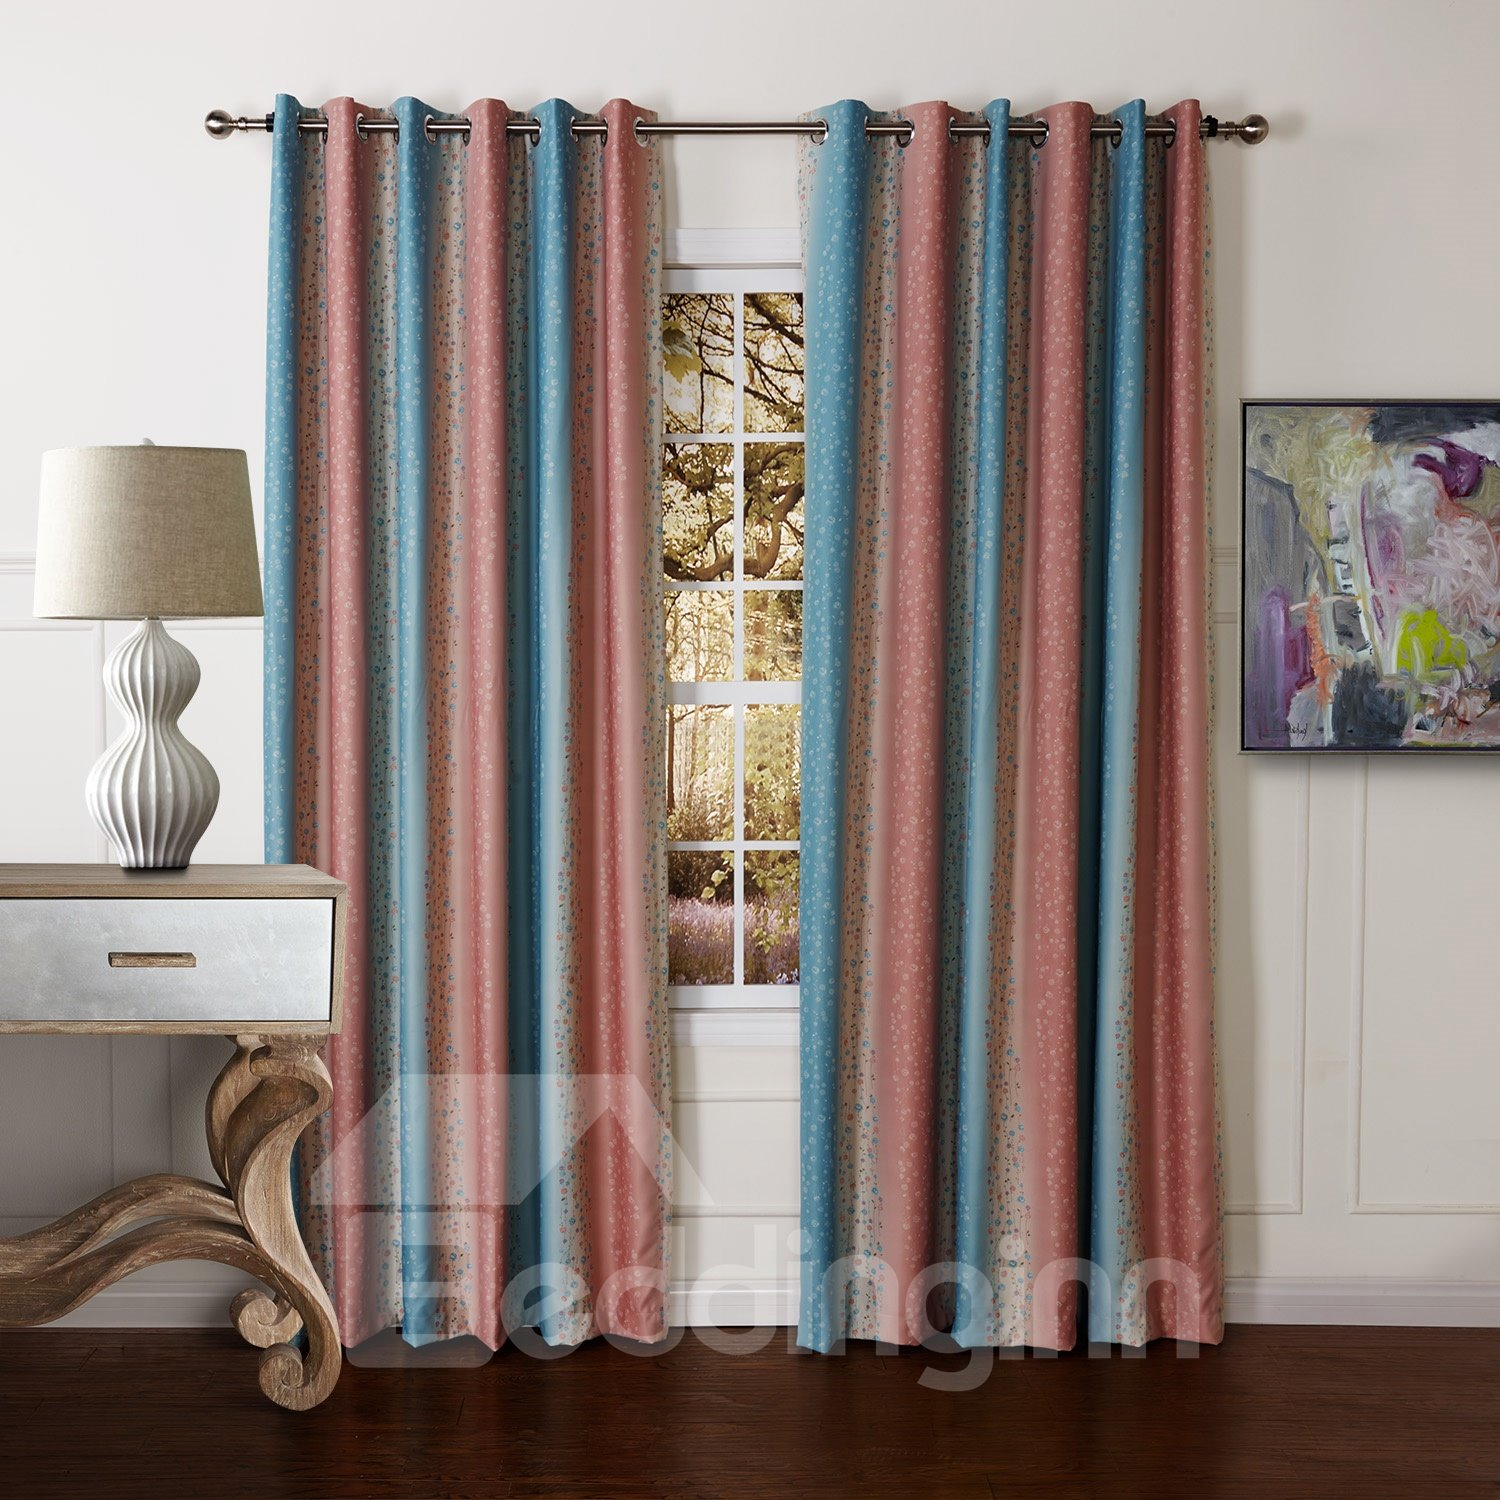 Double Sided Printing Pretty Polyester Custom Curtain